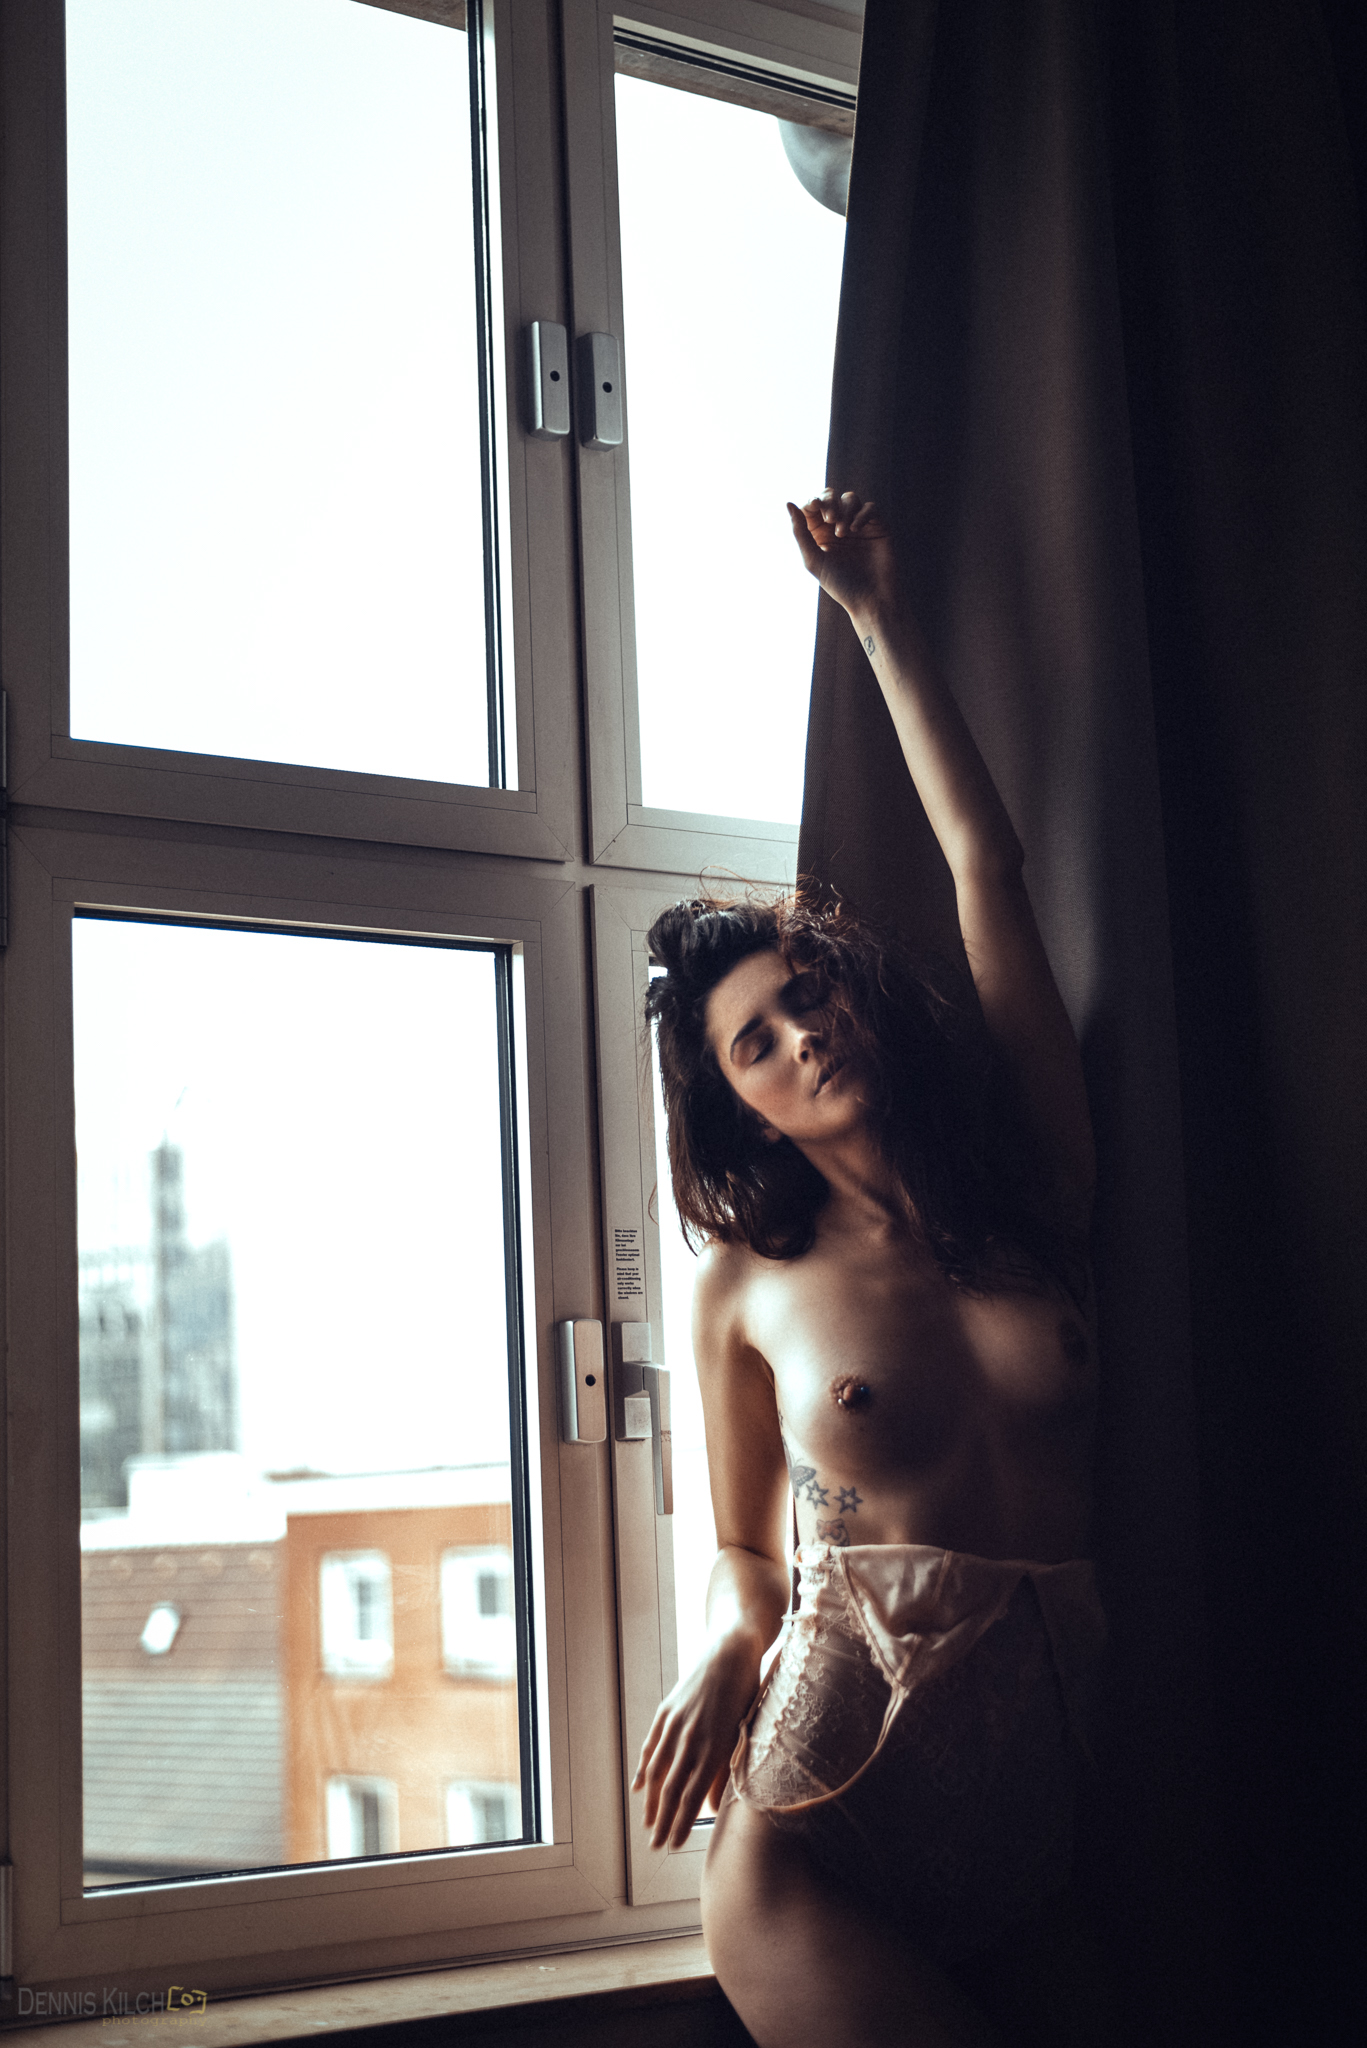 Pillow Fight with Caro | фотограф denniskilchphotography +